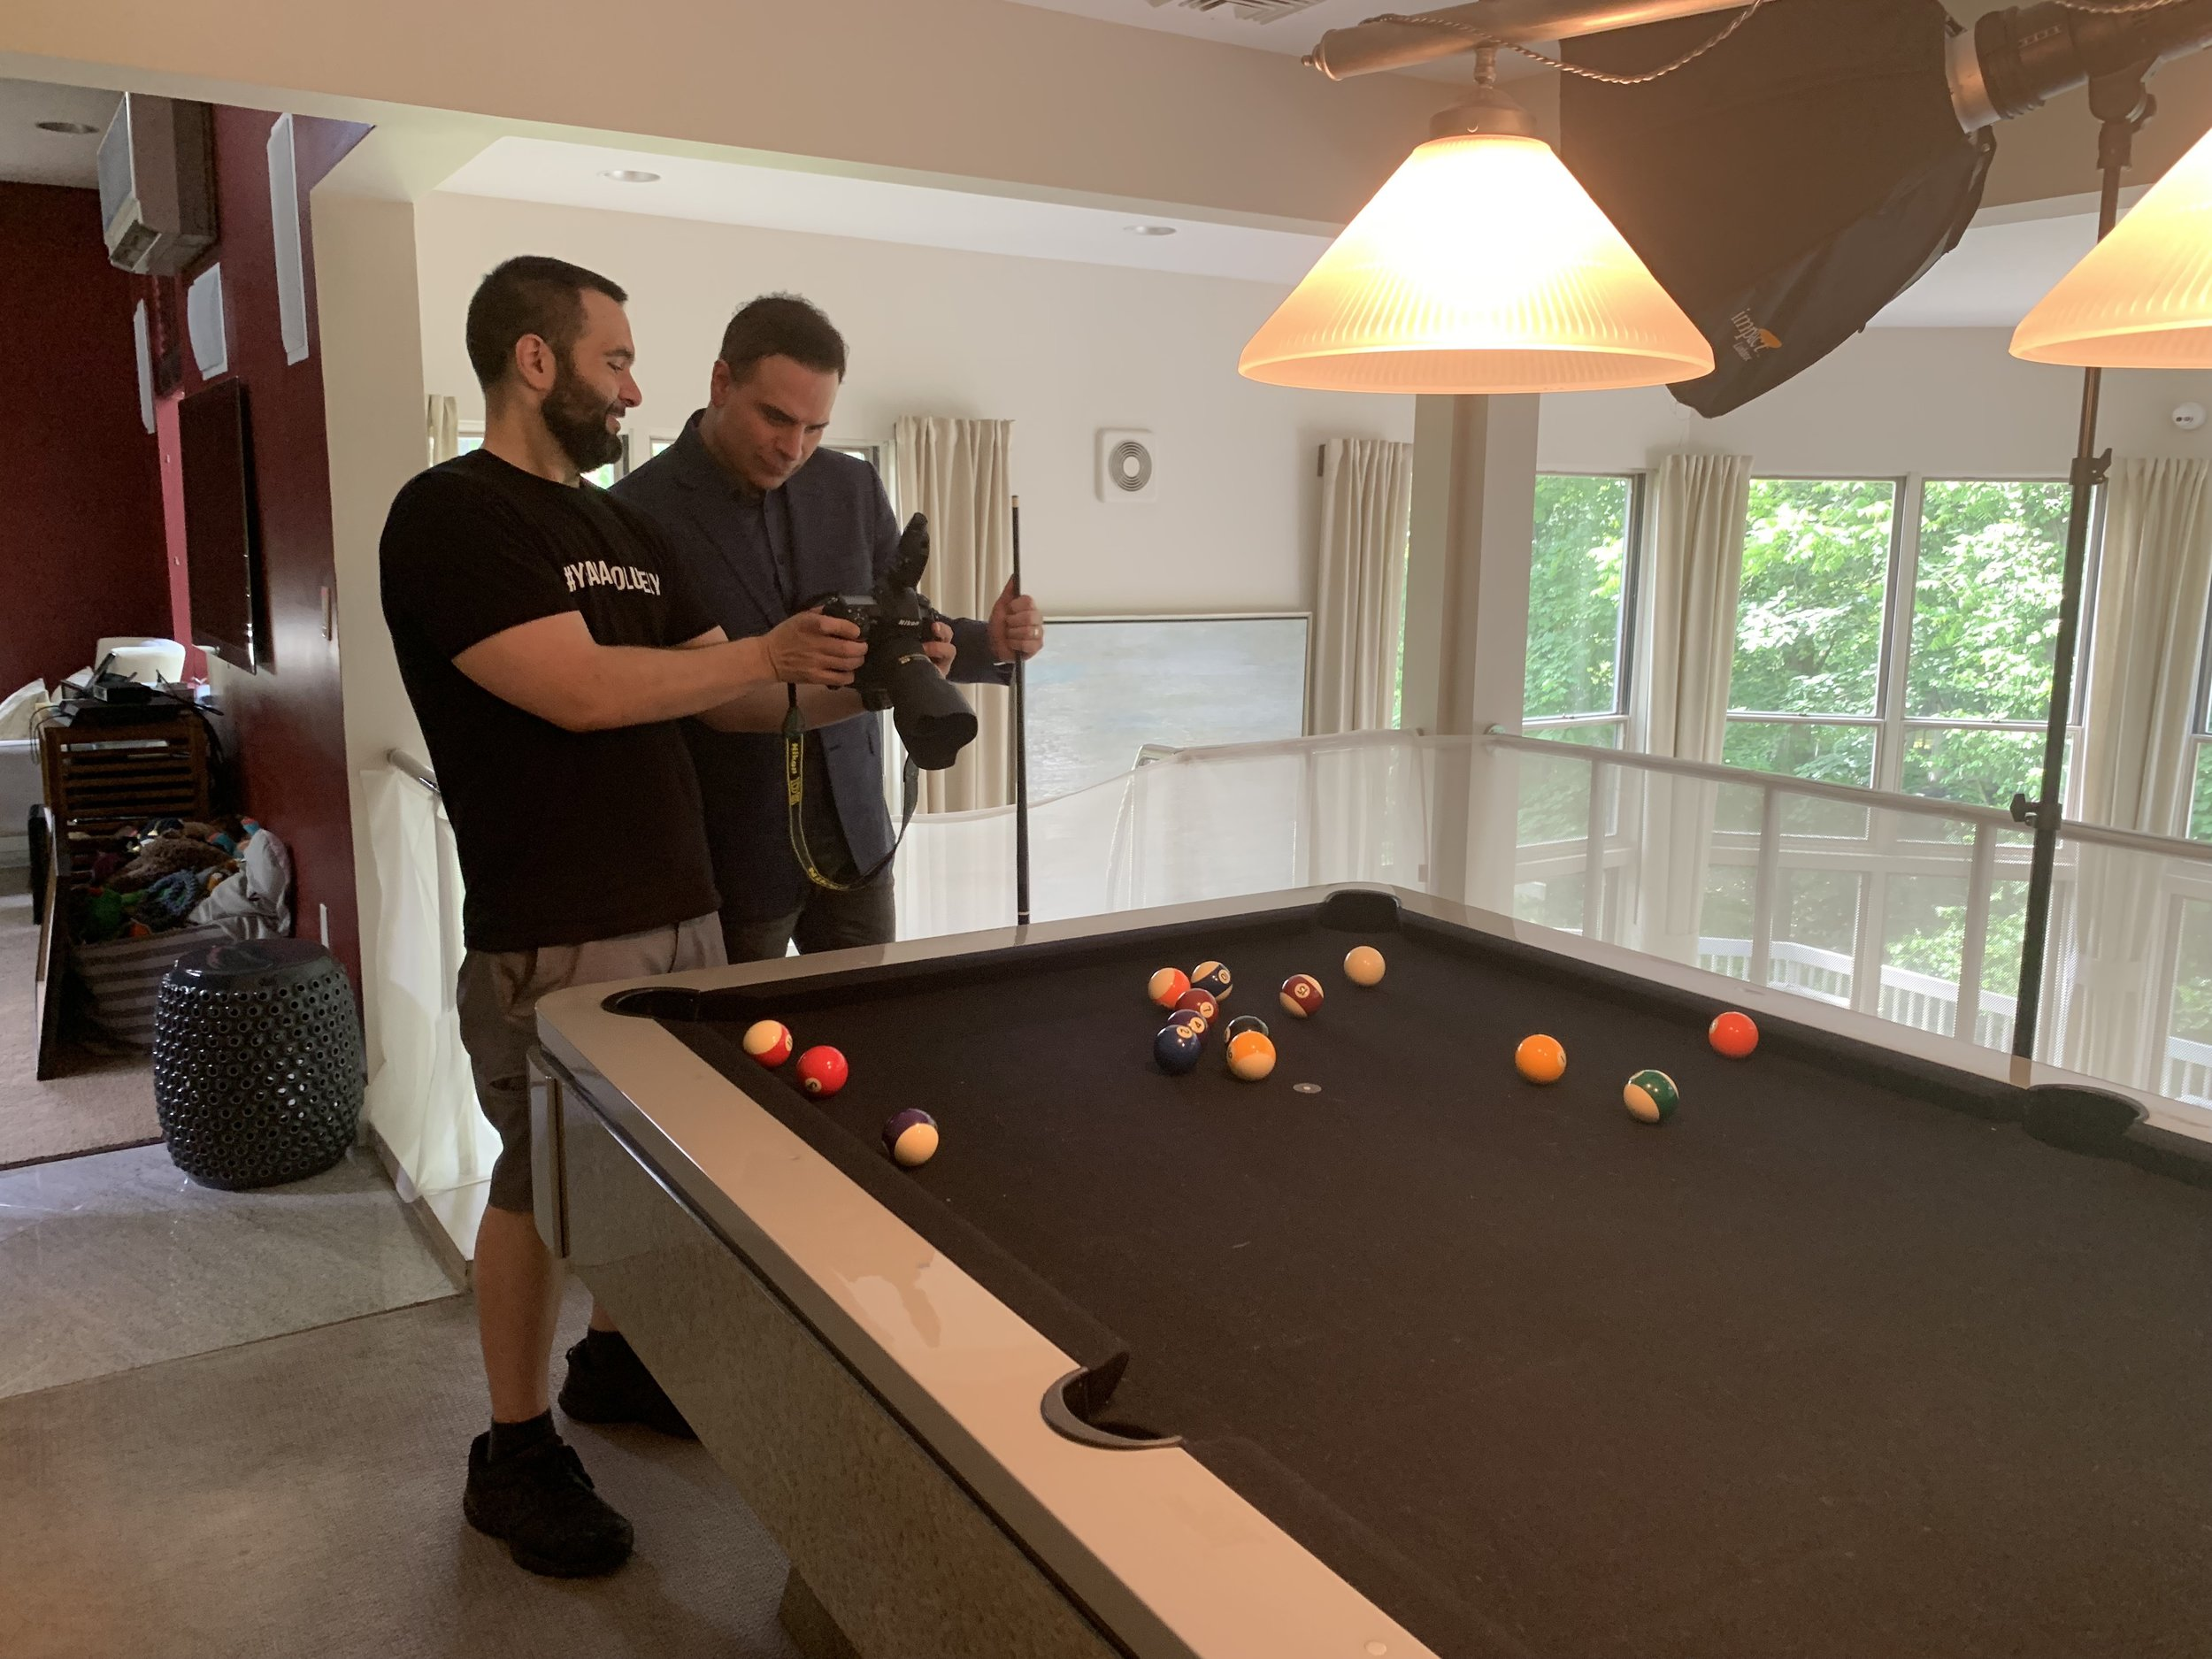 NYC Branded Lifesyle Portrait Dr Brian Lima John DeMato reviewing photo by pool table